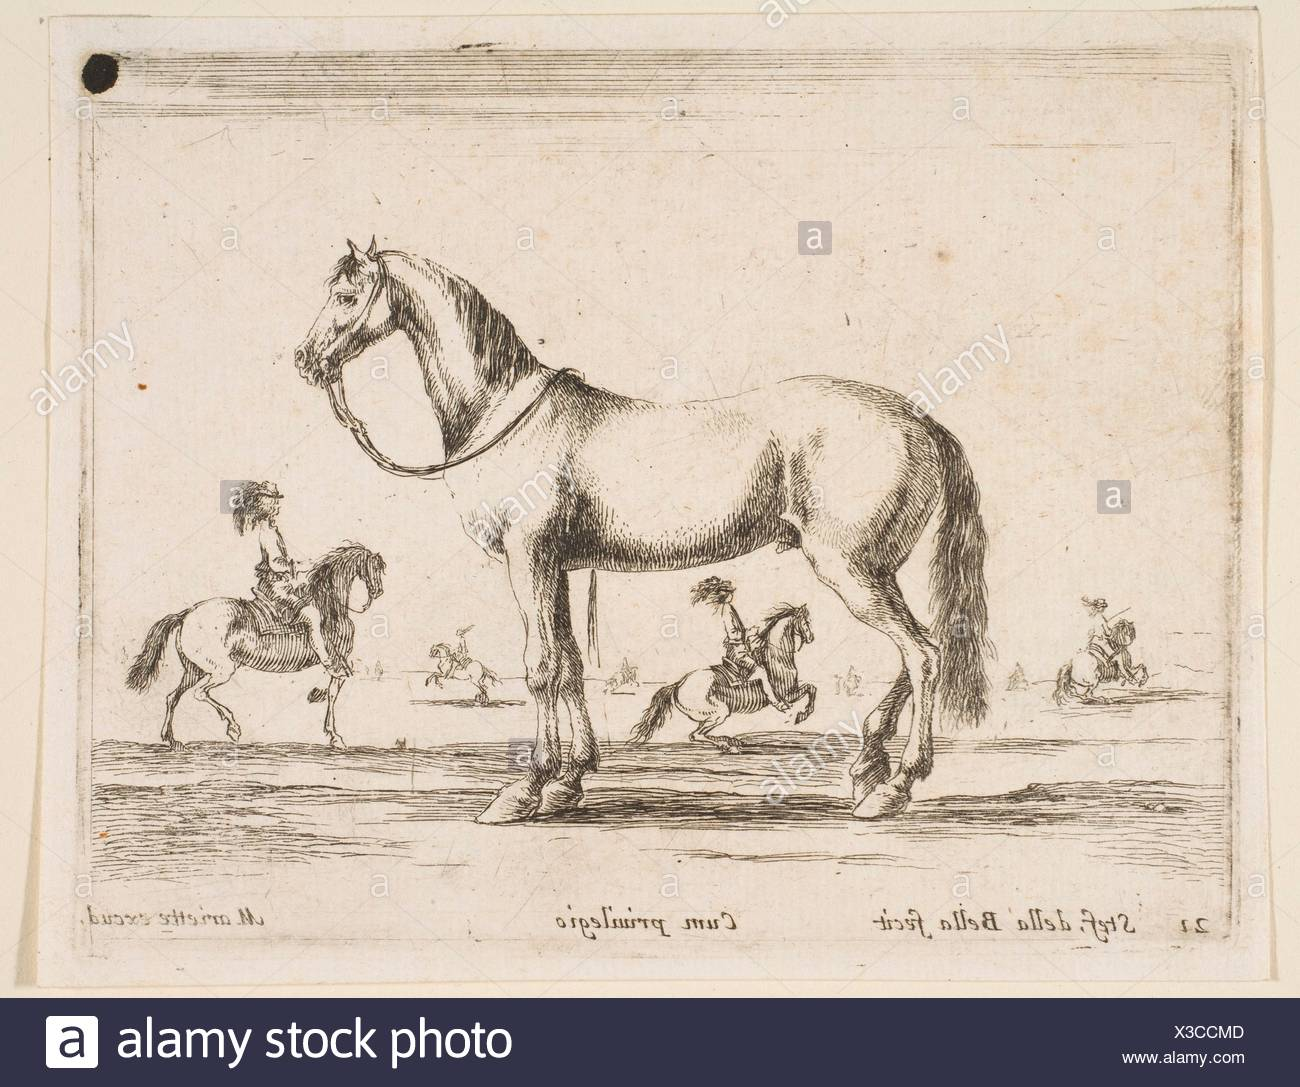 Plate 21: horse, from 'Various animals' (Diversi animali). Series/Portfolio: 'Various animals' (Diversi animali); Artist: Stefano della Bella - Stock Image